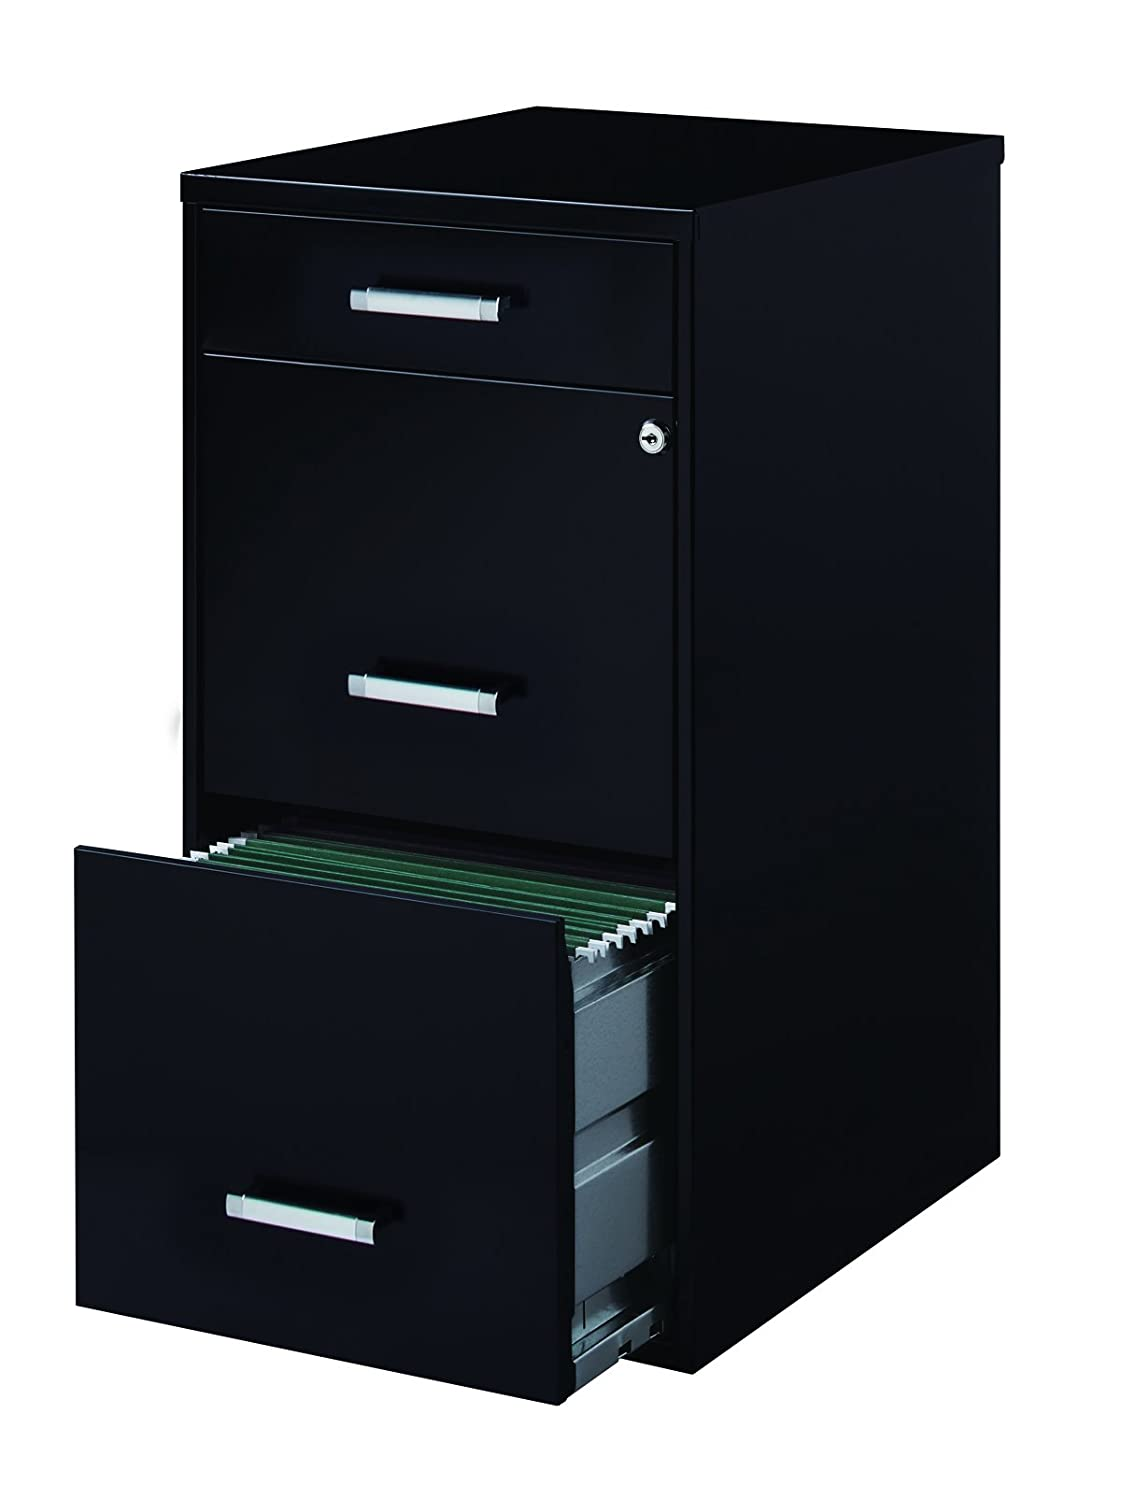 Space Solutions 3-Drawer File Cabinet - 18-Inch Deep - Black